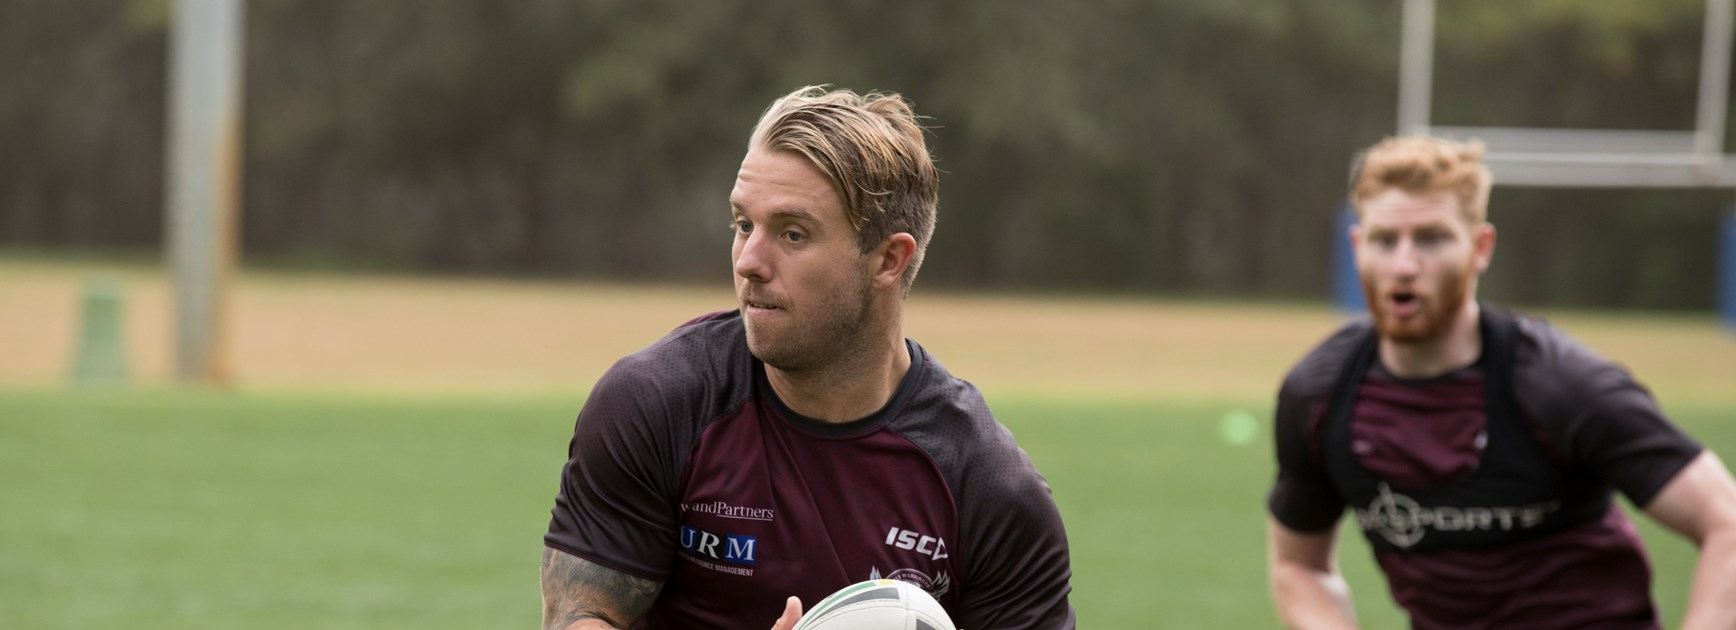 Enjoyment the key for Elgey at Sea Eagles